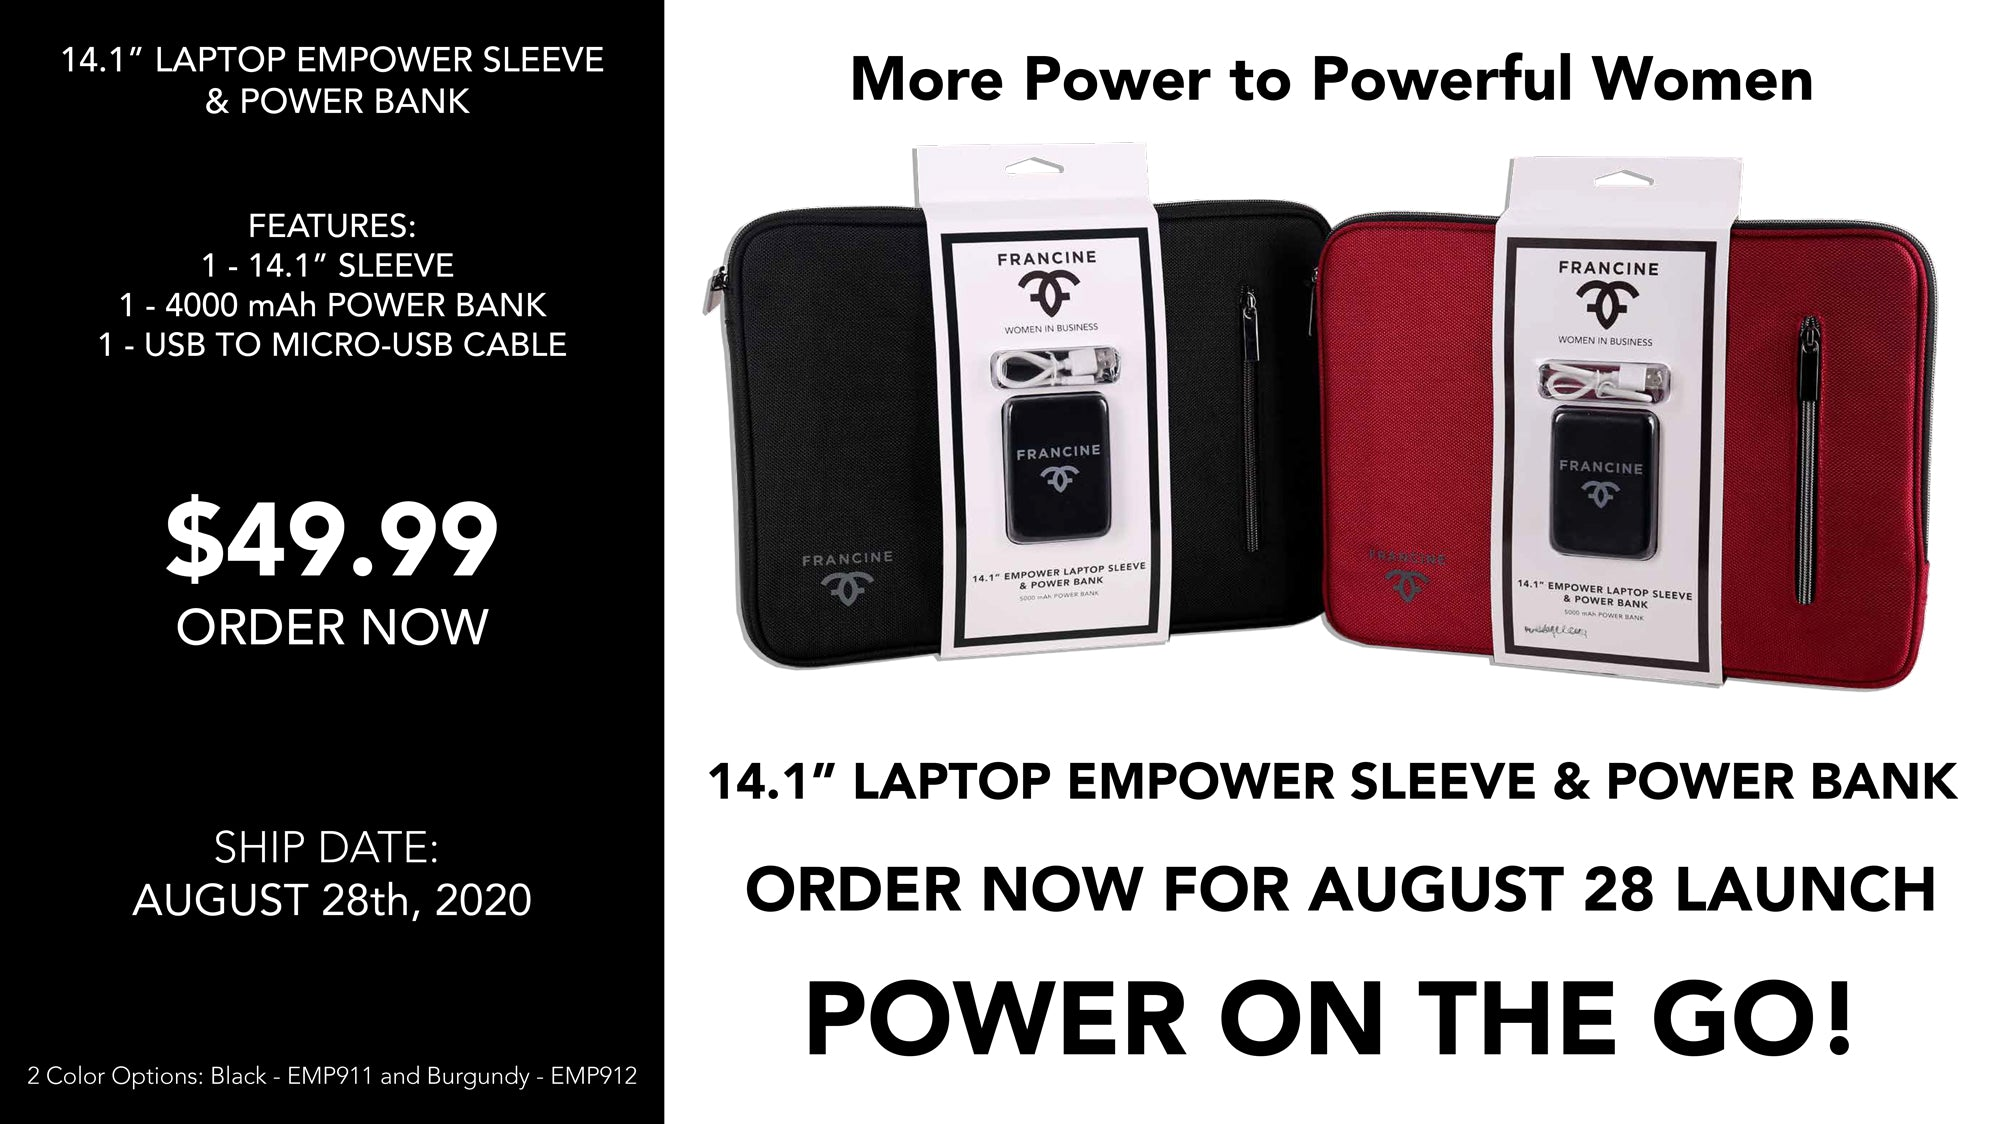 The New Francine Collections Empower Sleeve and Power Bank